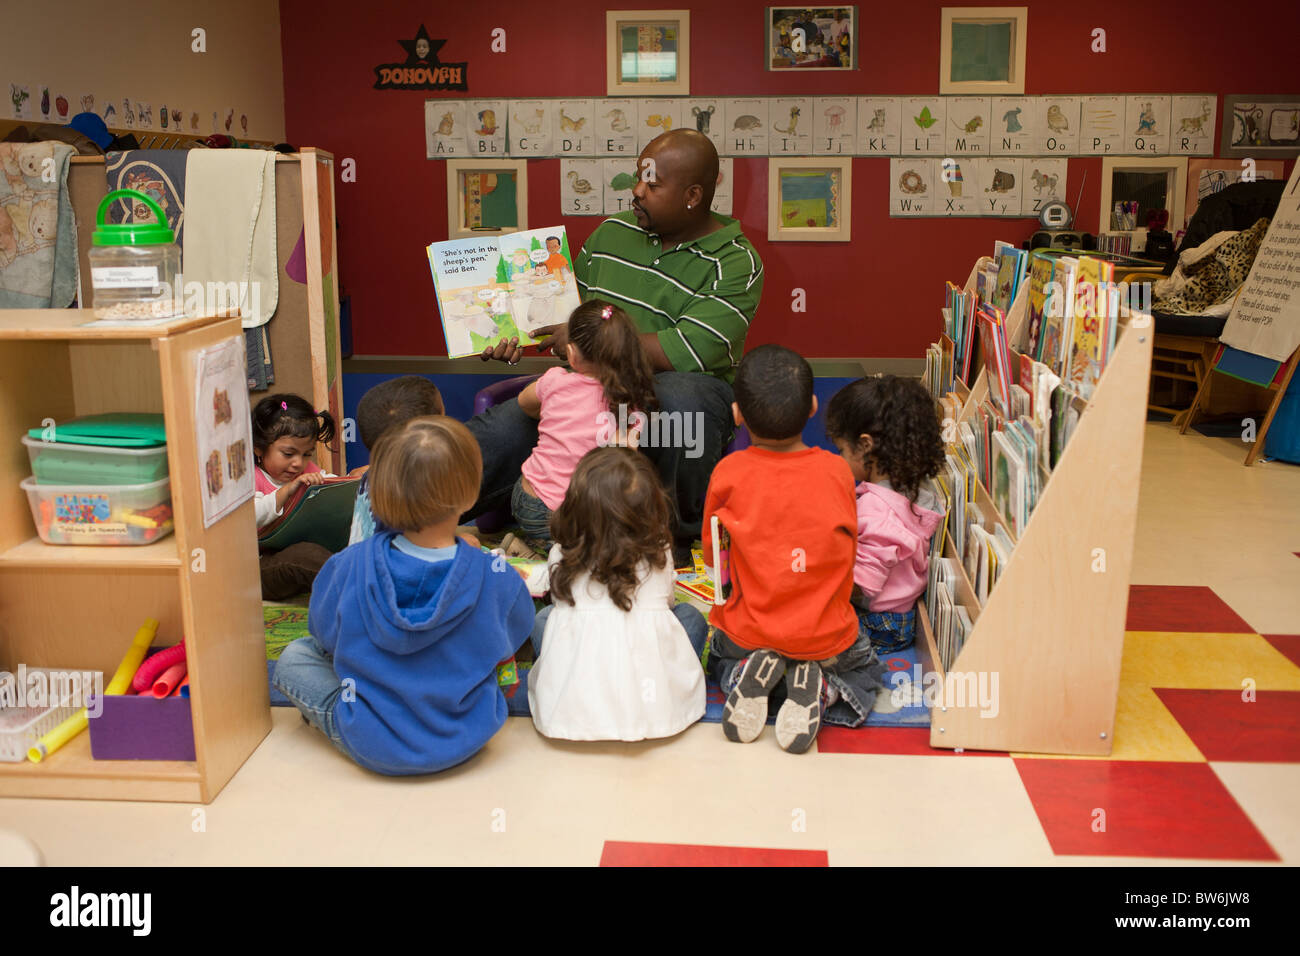 Male African American Preschool Teacher Helping Students